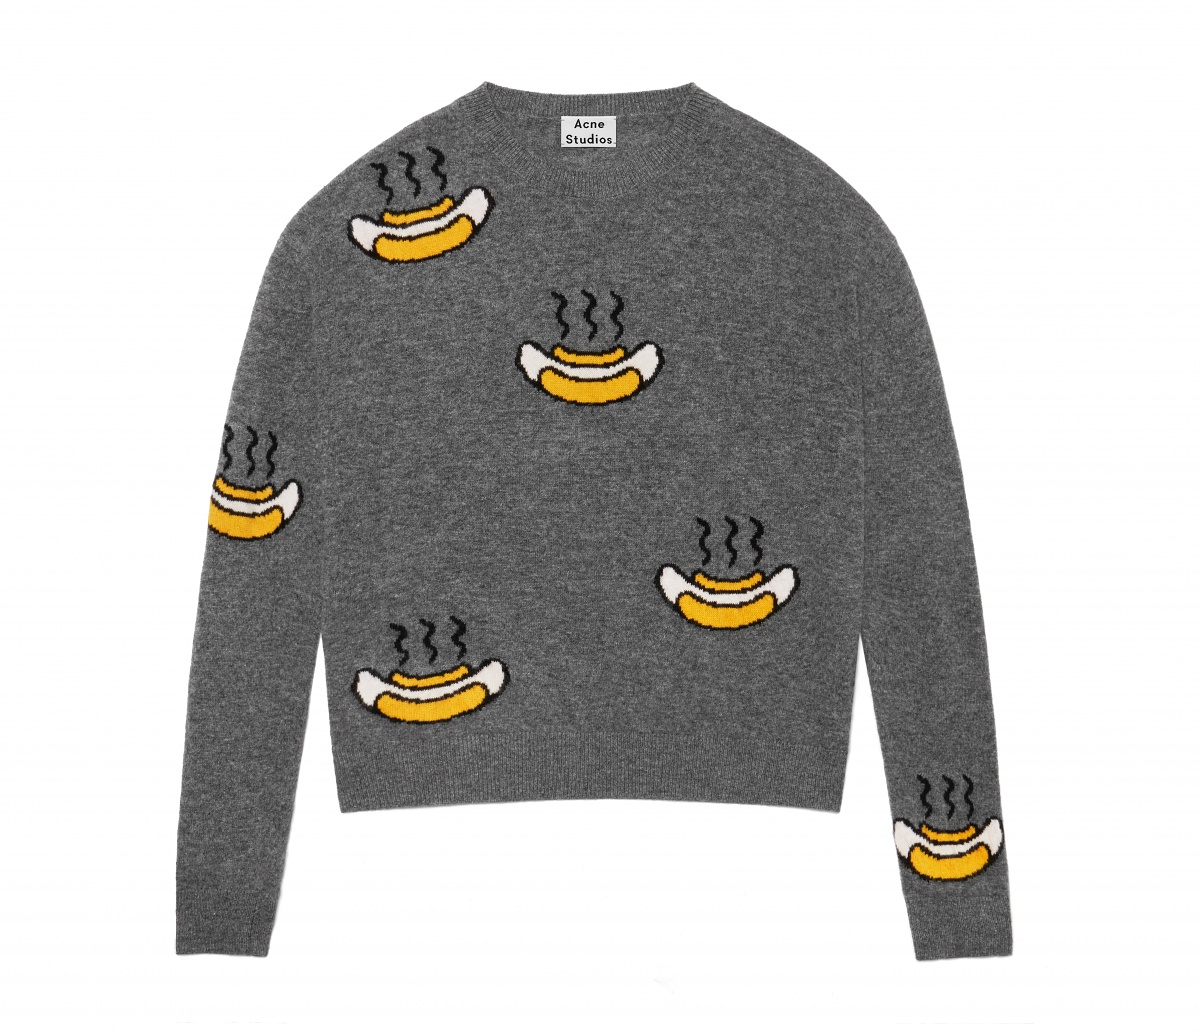 Acne Studios emojis-yesonfashion-18